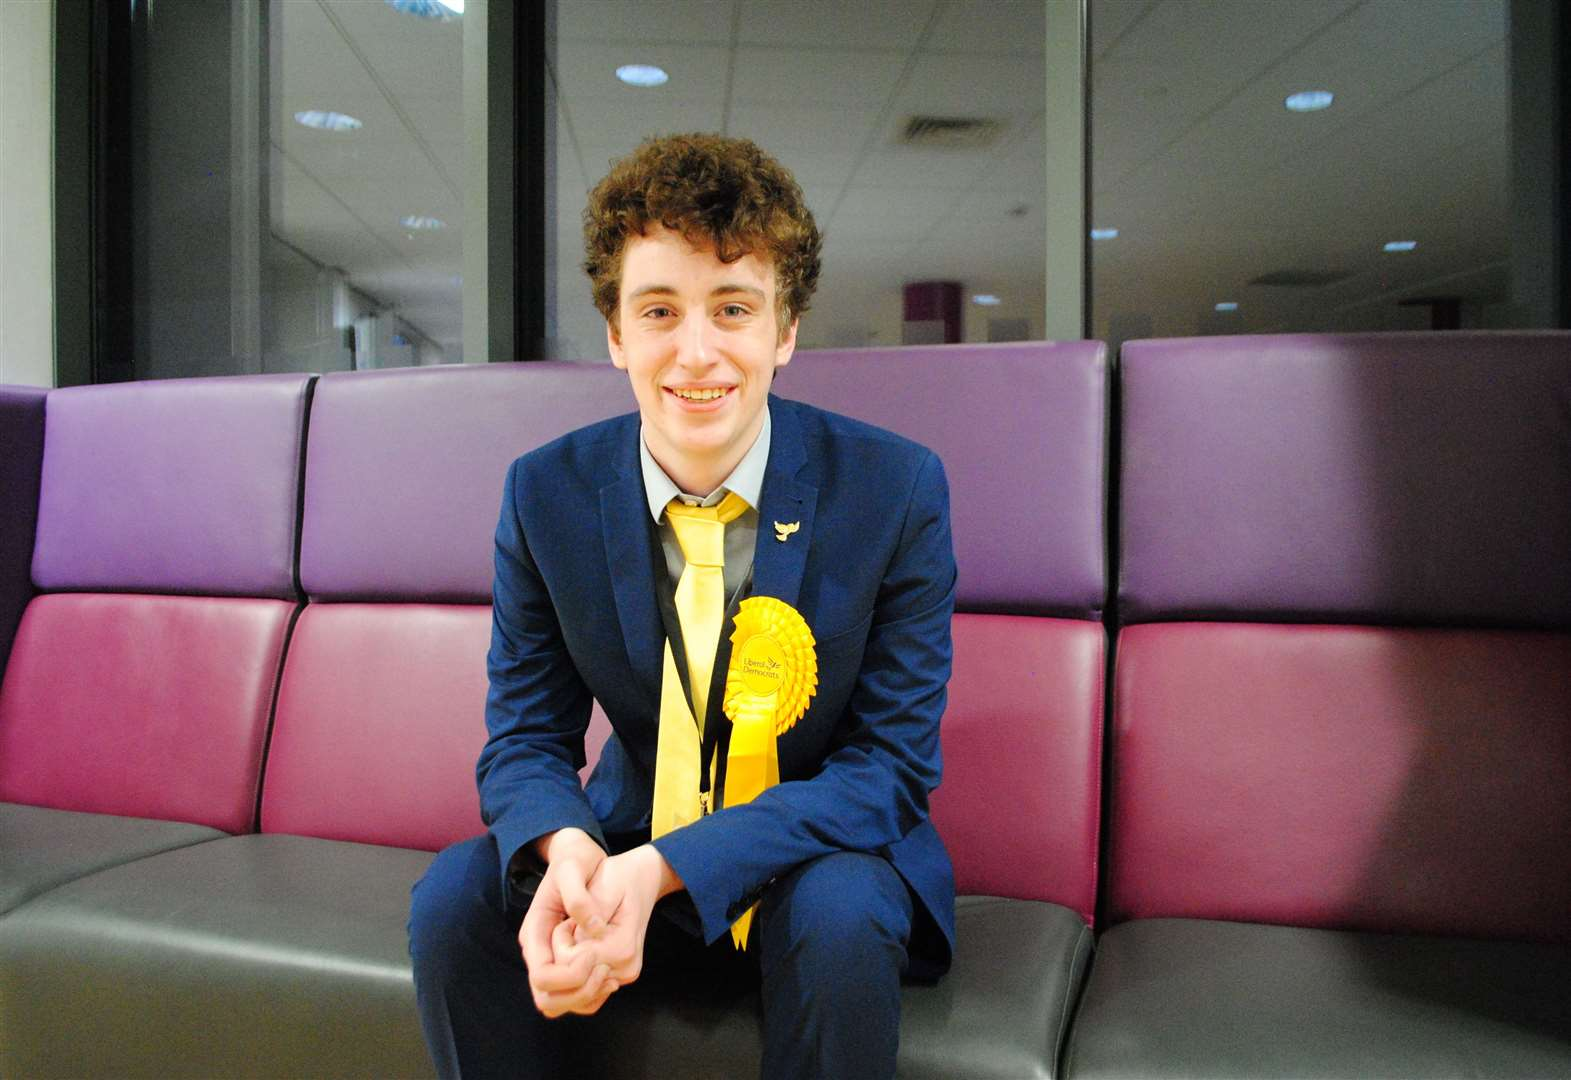 General Election 2019: 20-year-old Liberal Democrat candidate says there has been no progress on saving Grantham Hospital